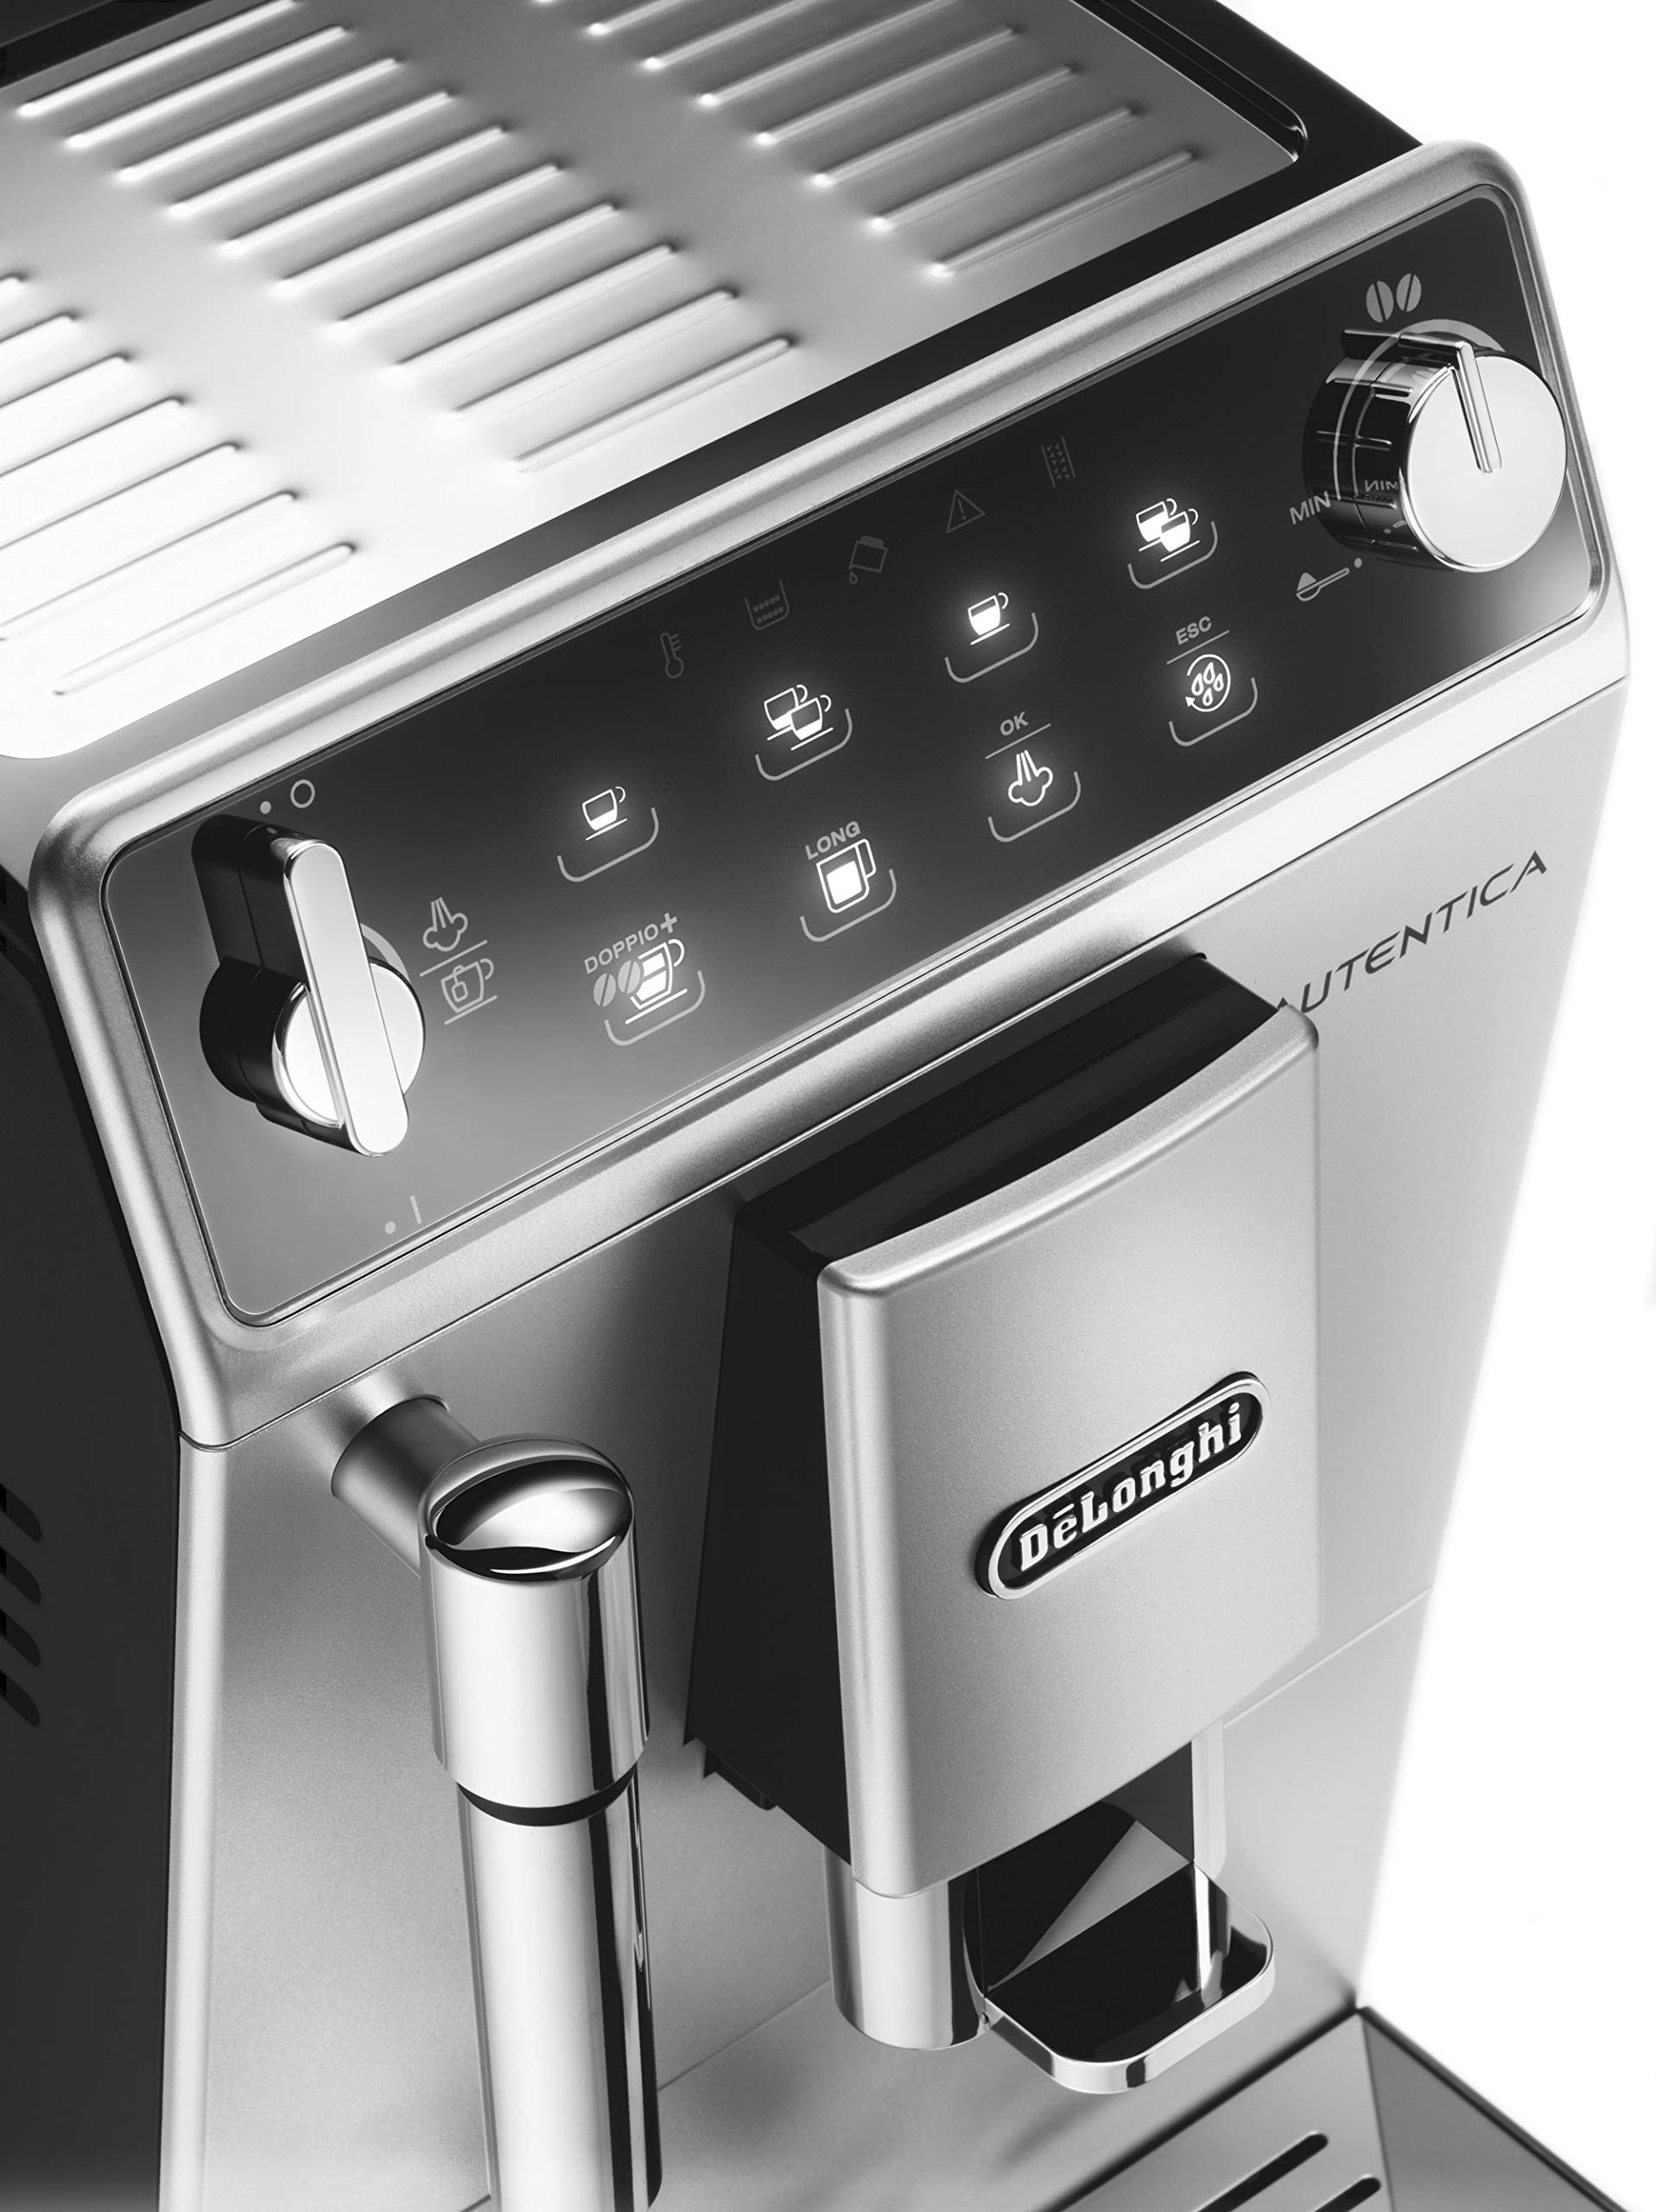 816uz6C1QjL - De'Longhi Autentica Cappuccino, Fully Automatic Bean to Cup Coffee Machine, Espresso Maker, ETAM29.660.SB, Silver and…